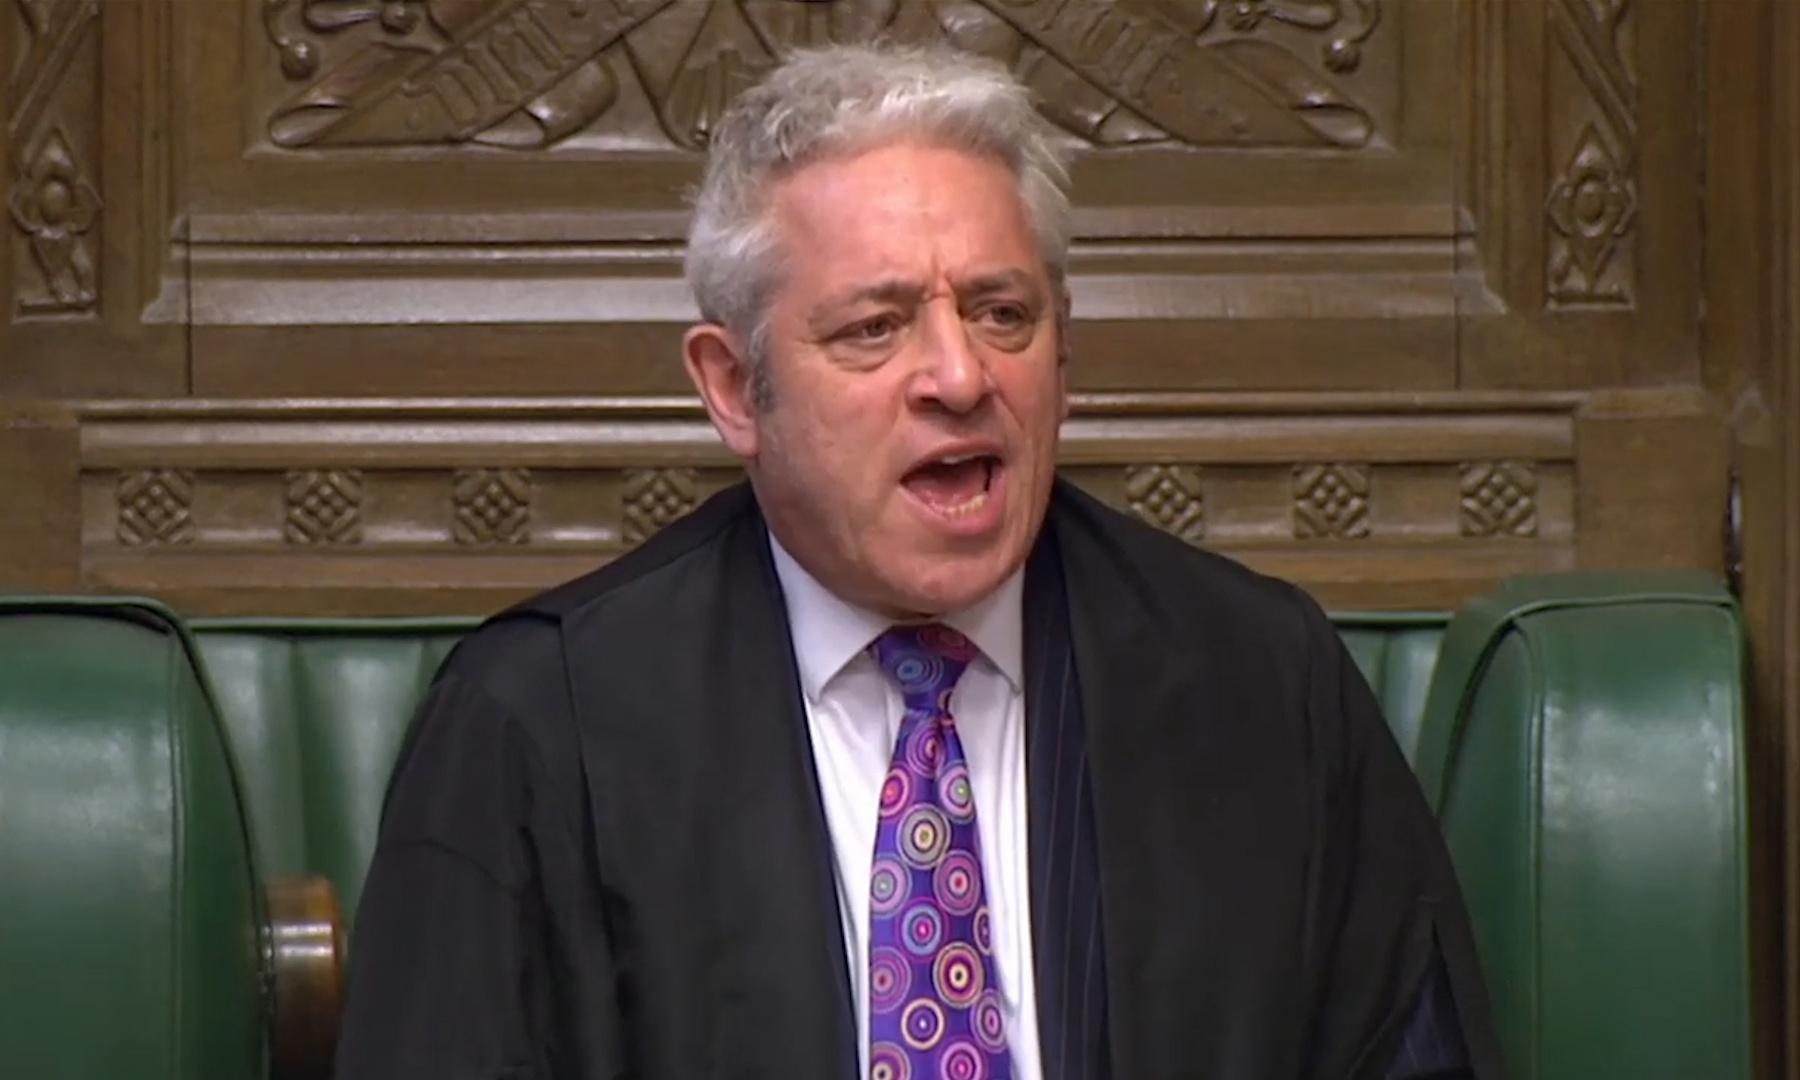 Next Tory PM will not be able to suspend parliament – Bercow